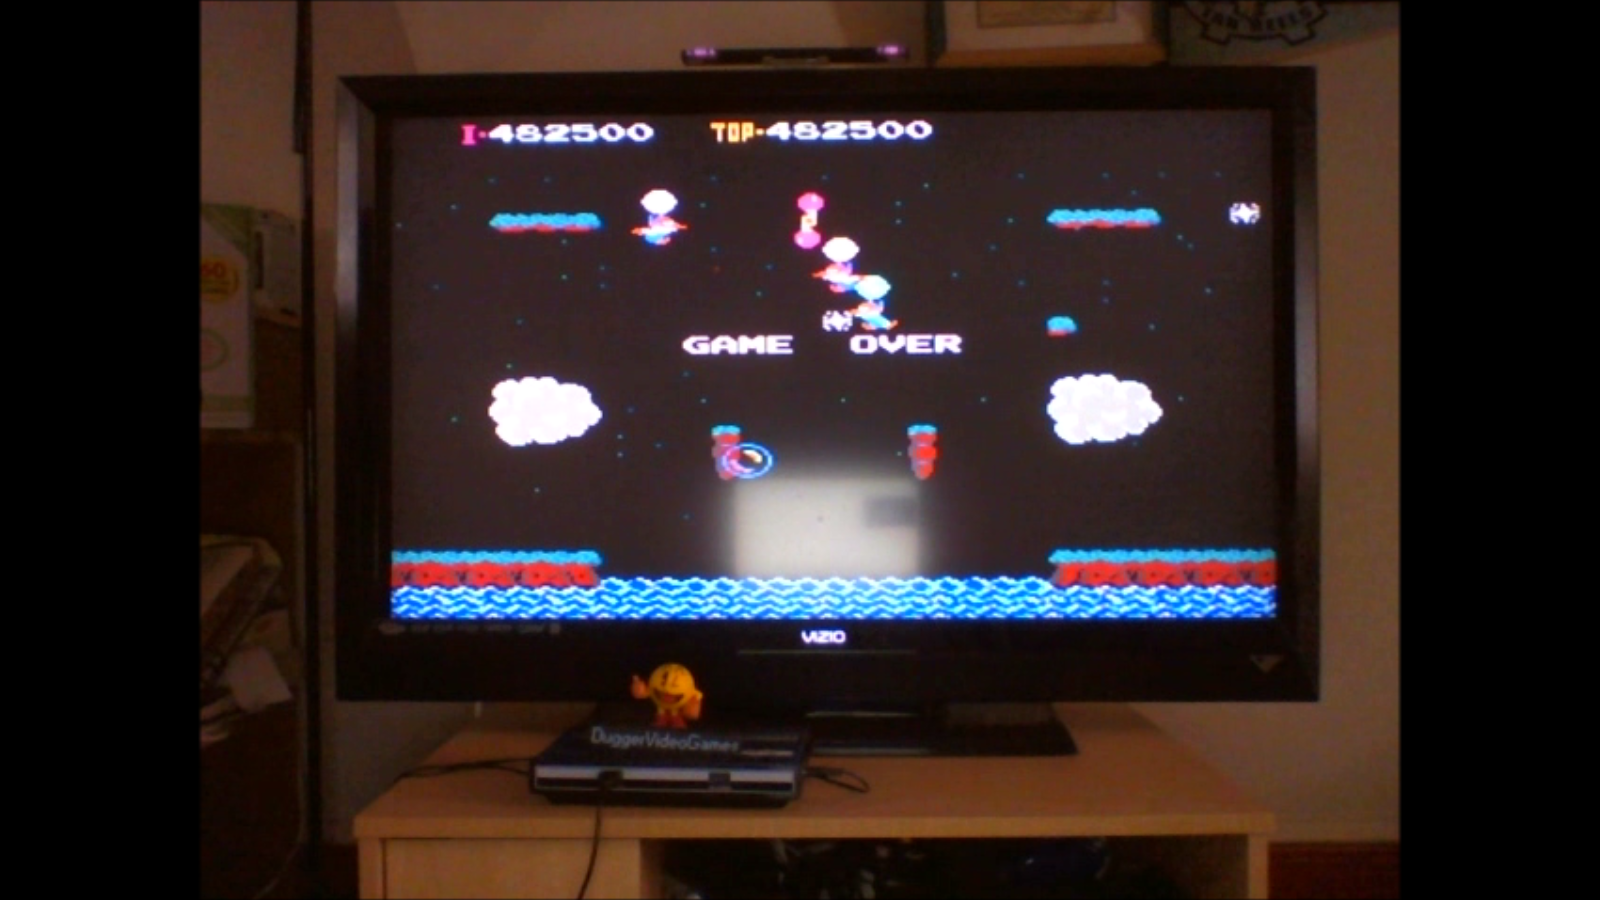 DuggerVideoGames: Balloon Fight (NES/Famicom Emulated) 482,500 points on 2016-07-15 17:07:08